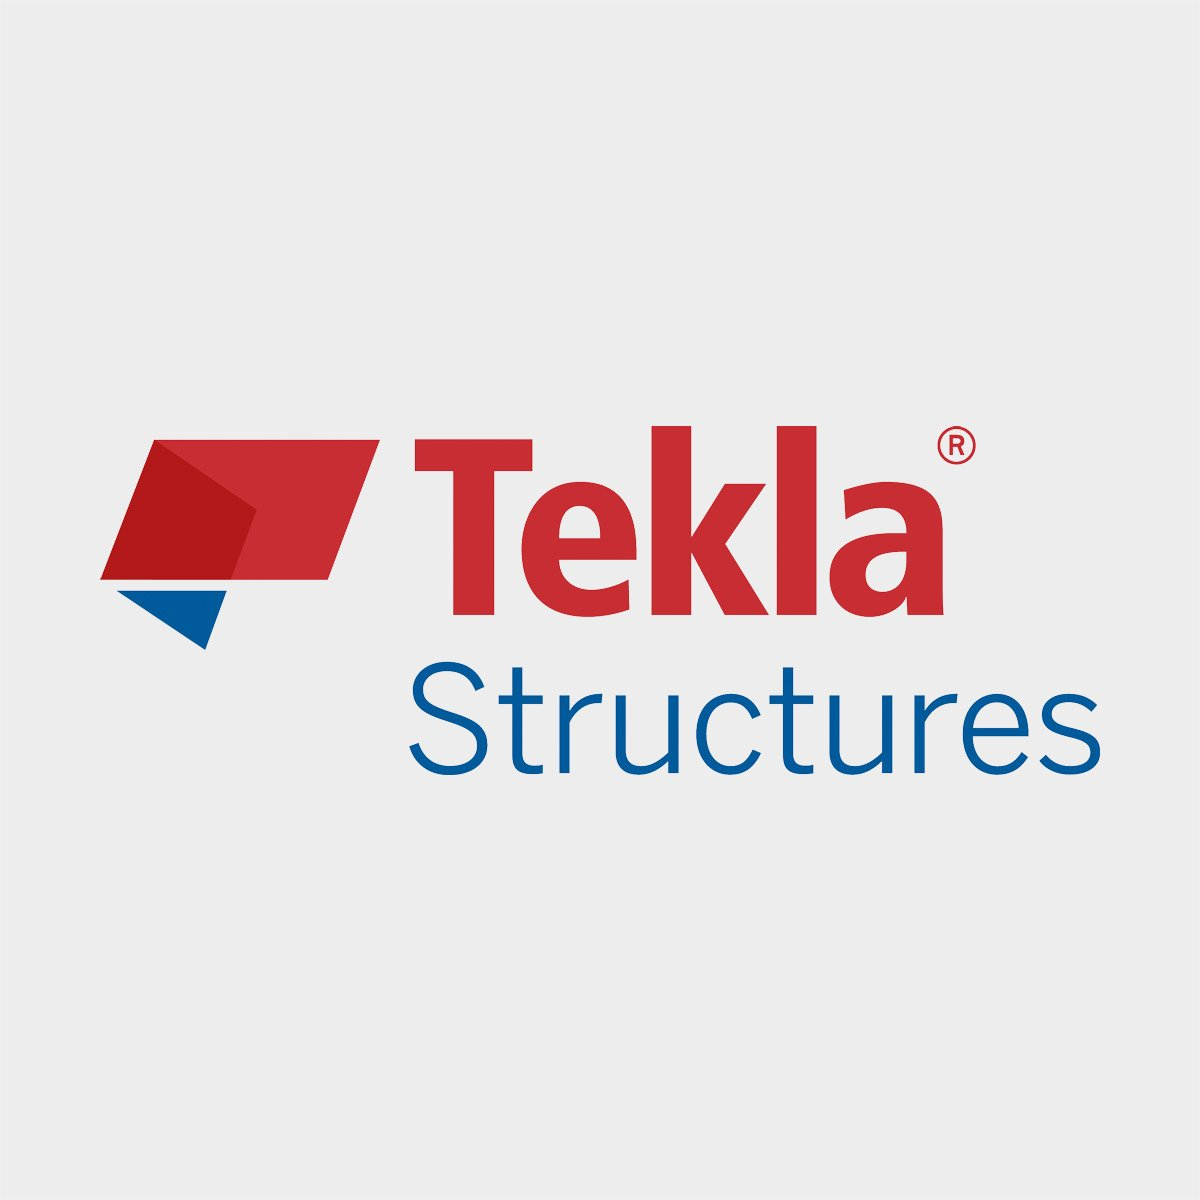 Part libary for Tekla Structures - Mürmann Gewindetechnik